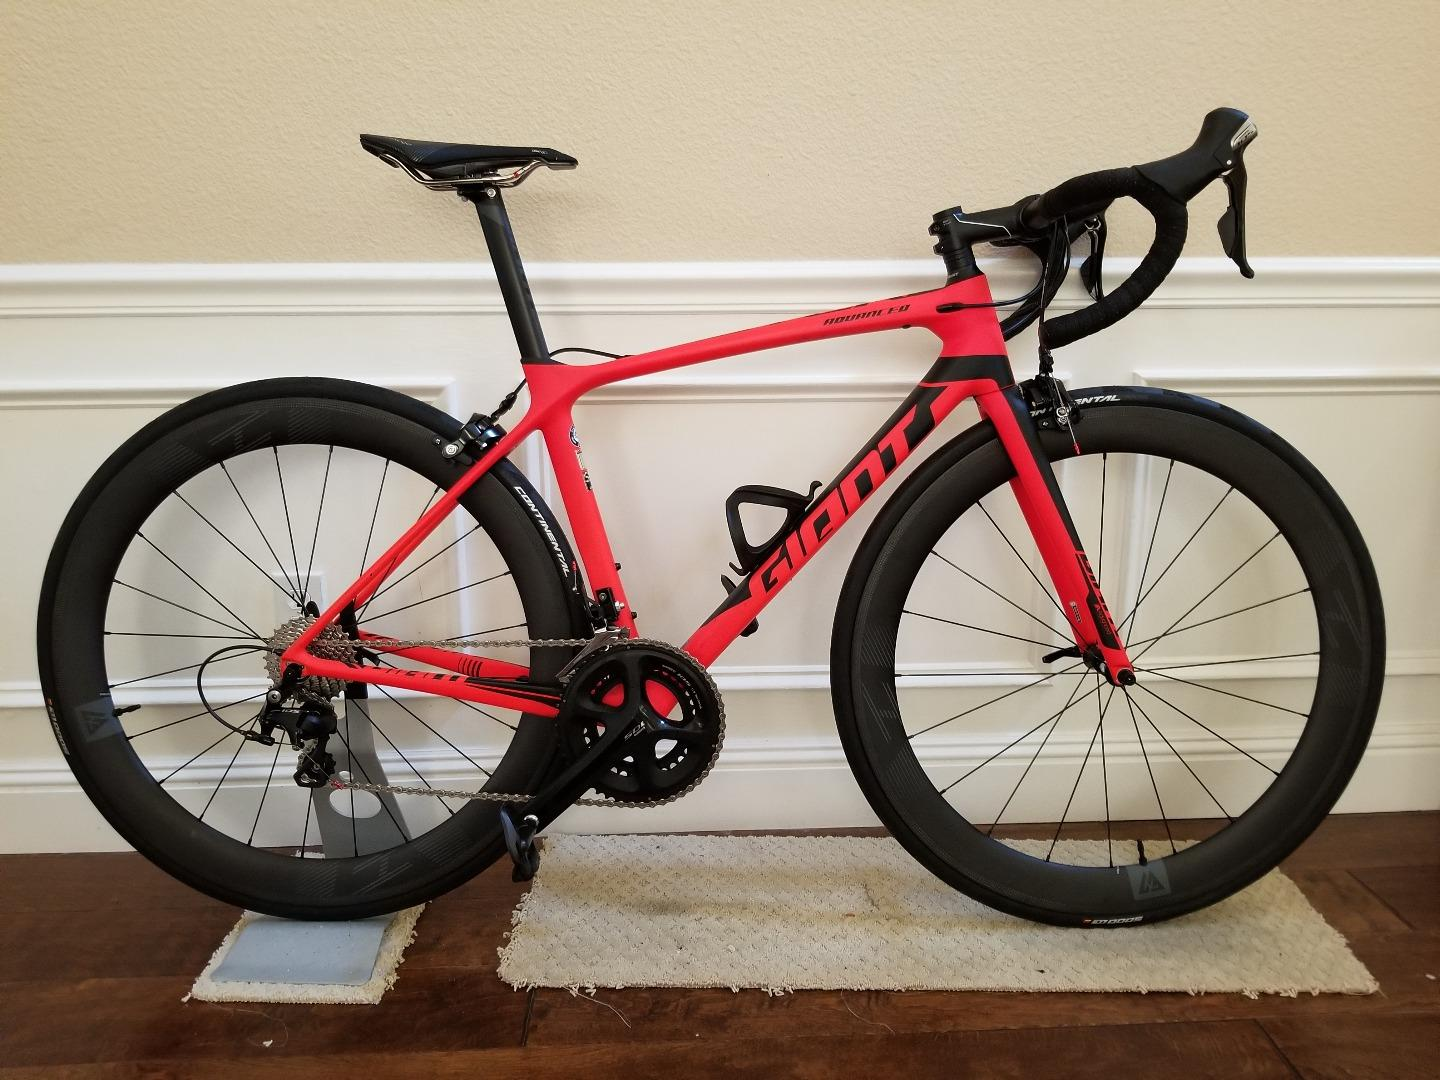 Light-Bicycle-AR56-carbon-wheels-on-Giant-advanced-2-frame-neon-red